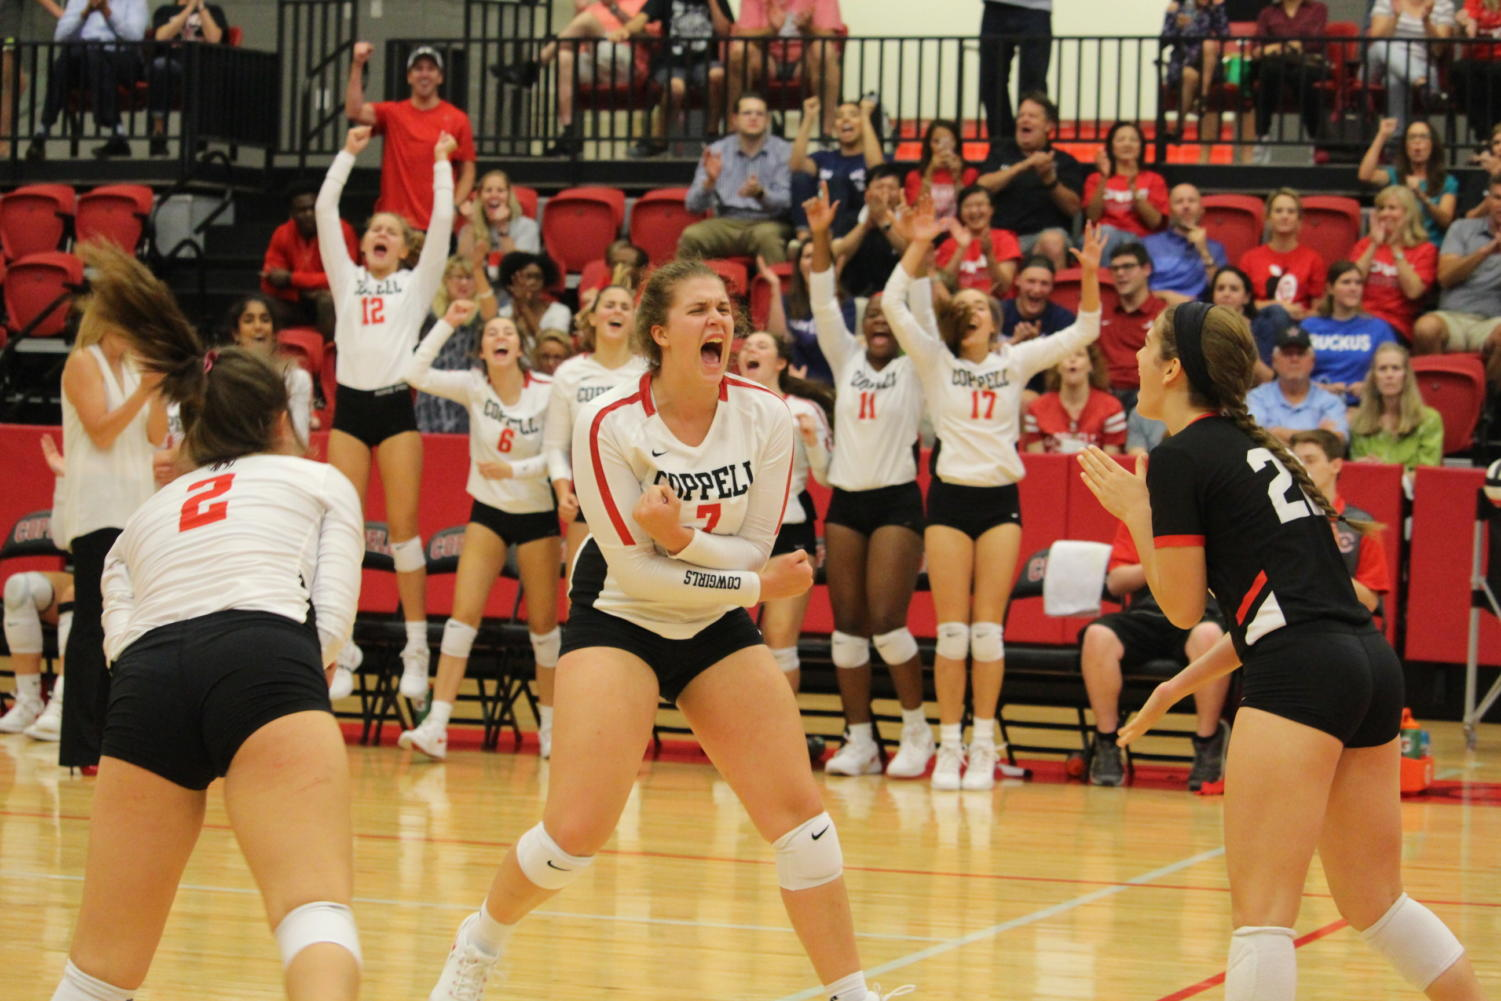 Coppell High School senior Pierce Woodall screams with excitement after spiking the ball during the match at CHS Arena against Waxahachie on August 11th. The Cowgirls beat the Waxahachie High School Indians, winning 2 out of 3 sets.